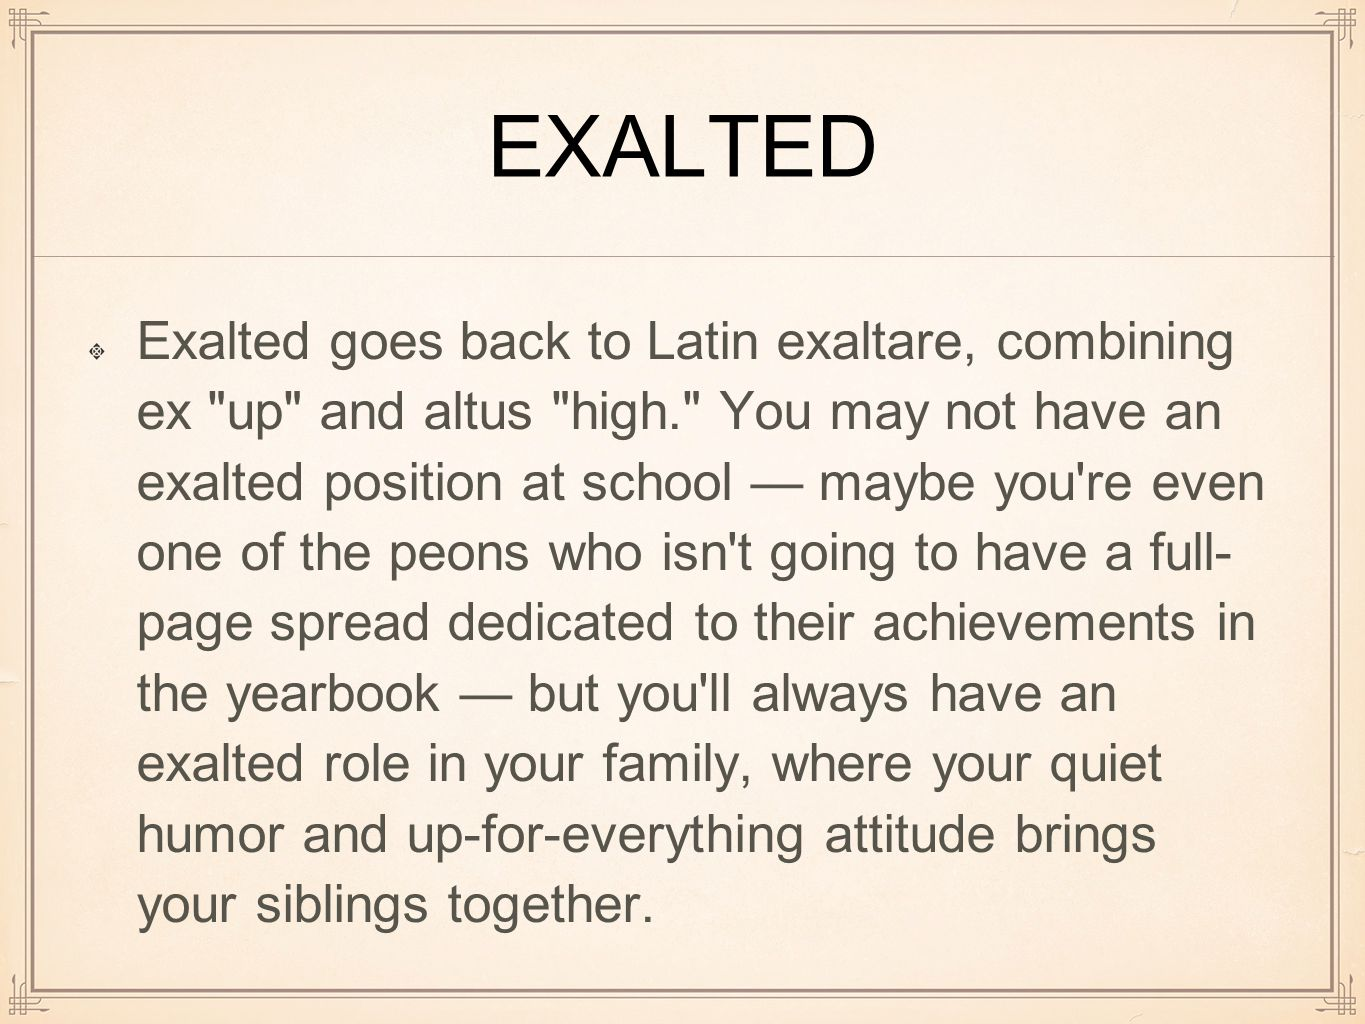 EXALTED Exalted goes back to Latin exaltare, combining ex up and altus high. You may not have an exalted position at school — maybe you re even one of the peons who isn t going to have a full- page spread dedicated to their achievements in the yearbook — but you ll always have an exalted role in your family, where your quiet humor and up-for-everything attitude brings your siblings together.